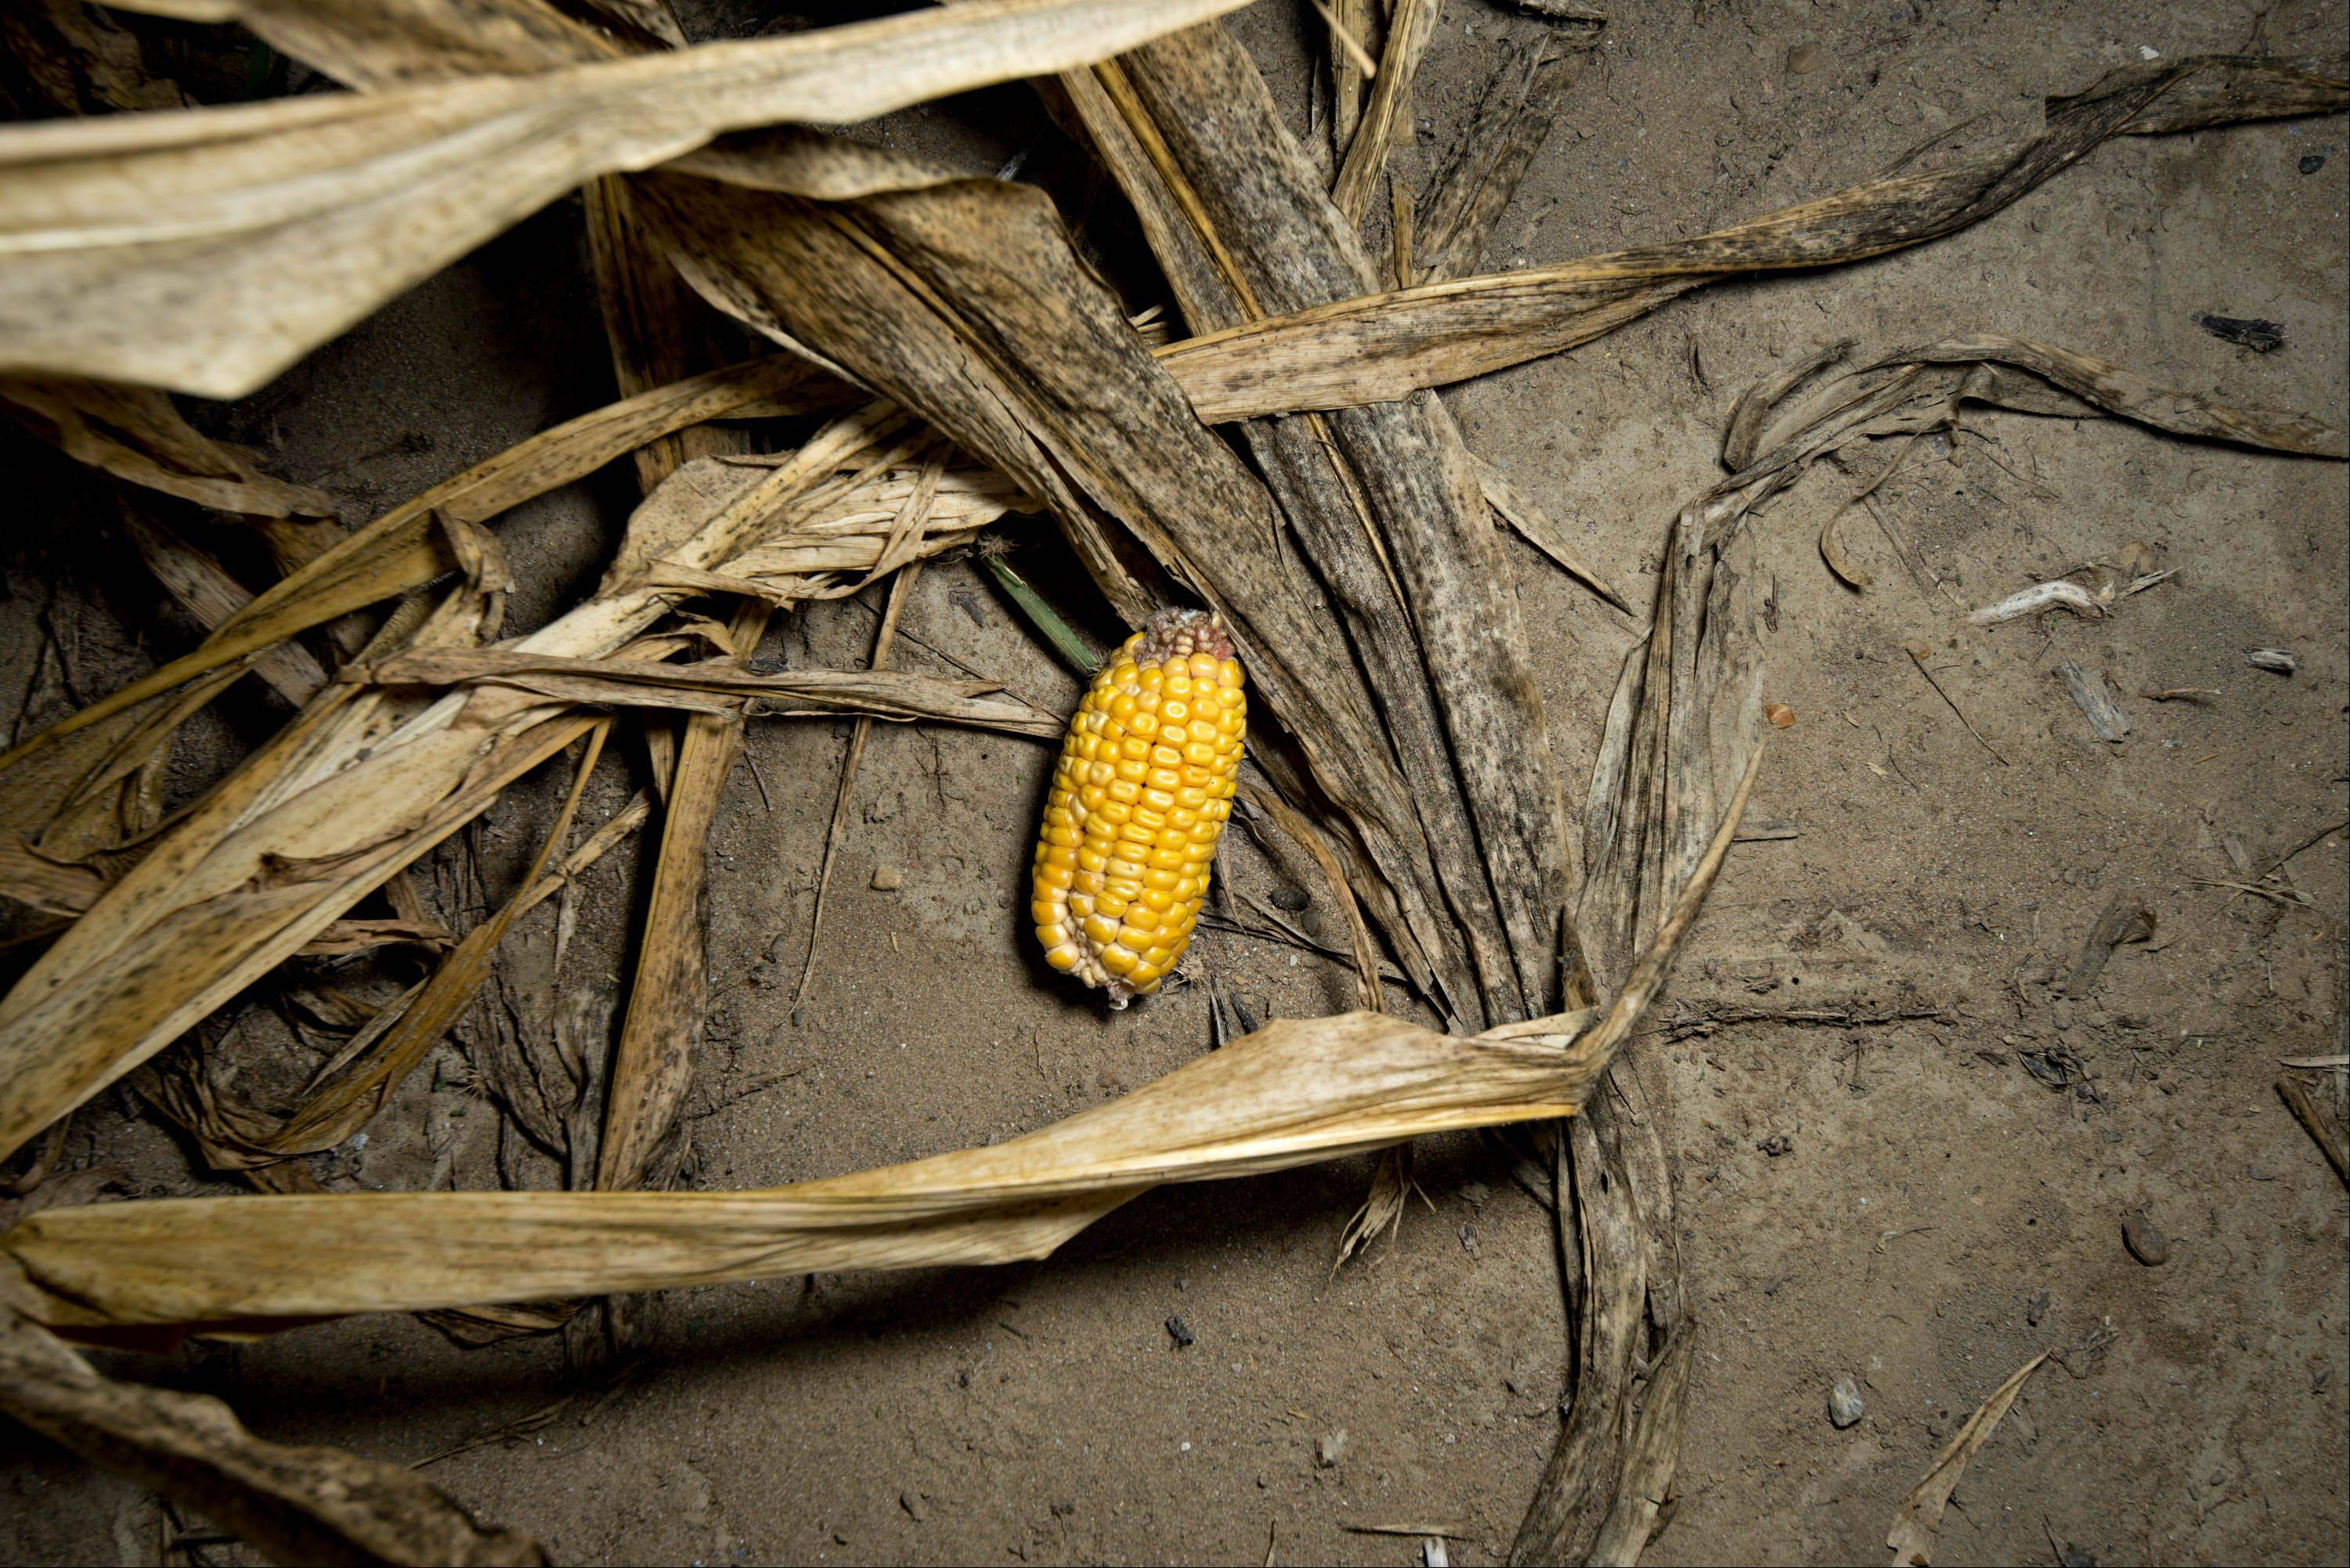 An underdeveloped ear of corn lies among corn plants damaged by extreme heat and drought conditions in a field Wednesday in Carmi.